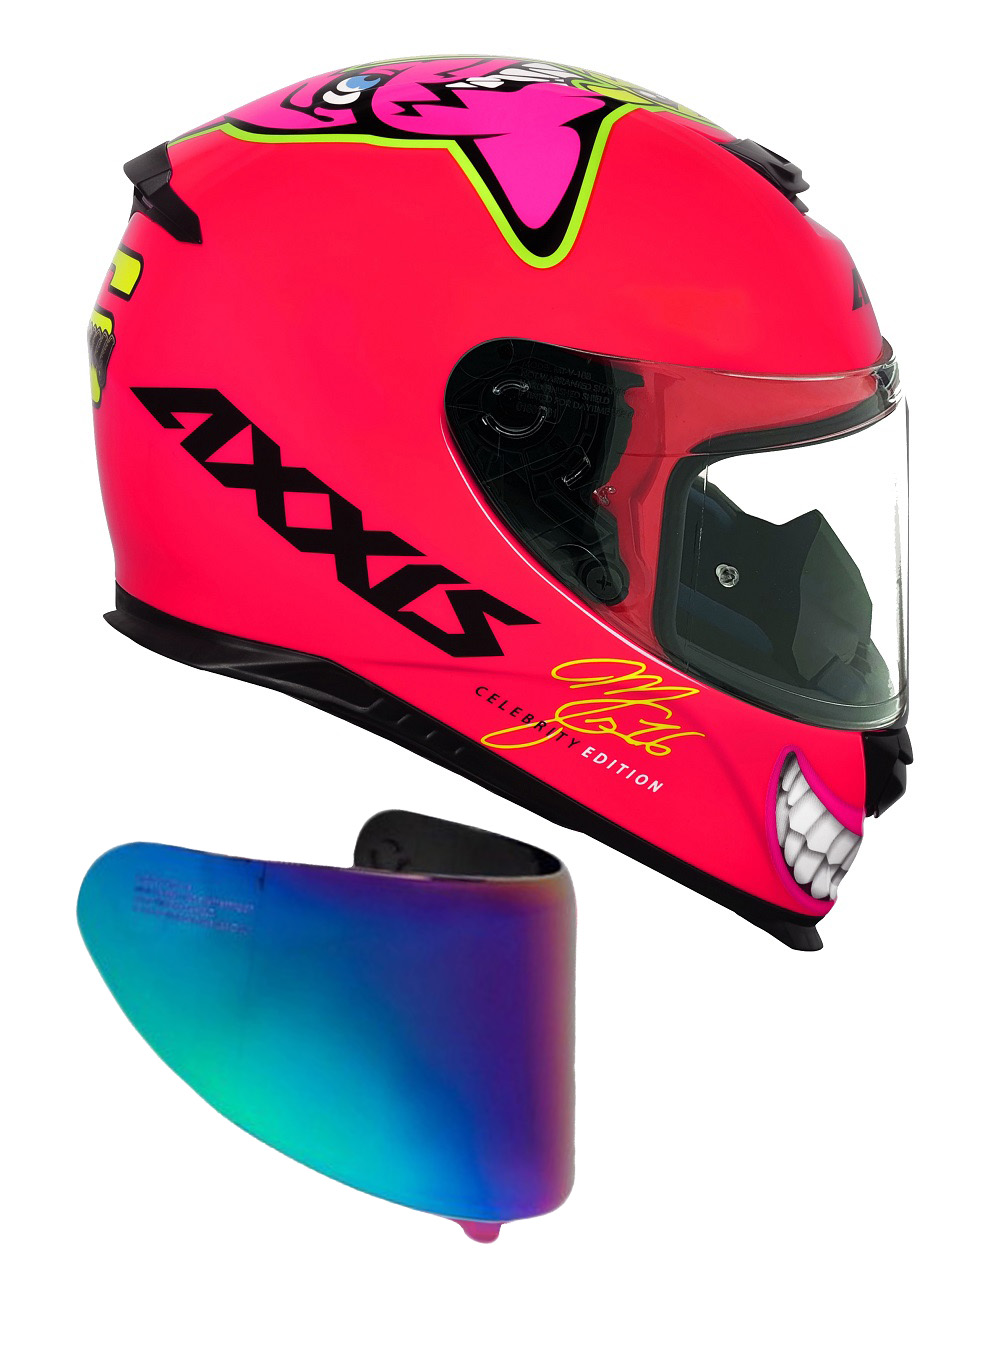 Capacete Axxis Mg16 Celebrity Edition Marianny Gloss Pink Com Viseira Camaleão